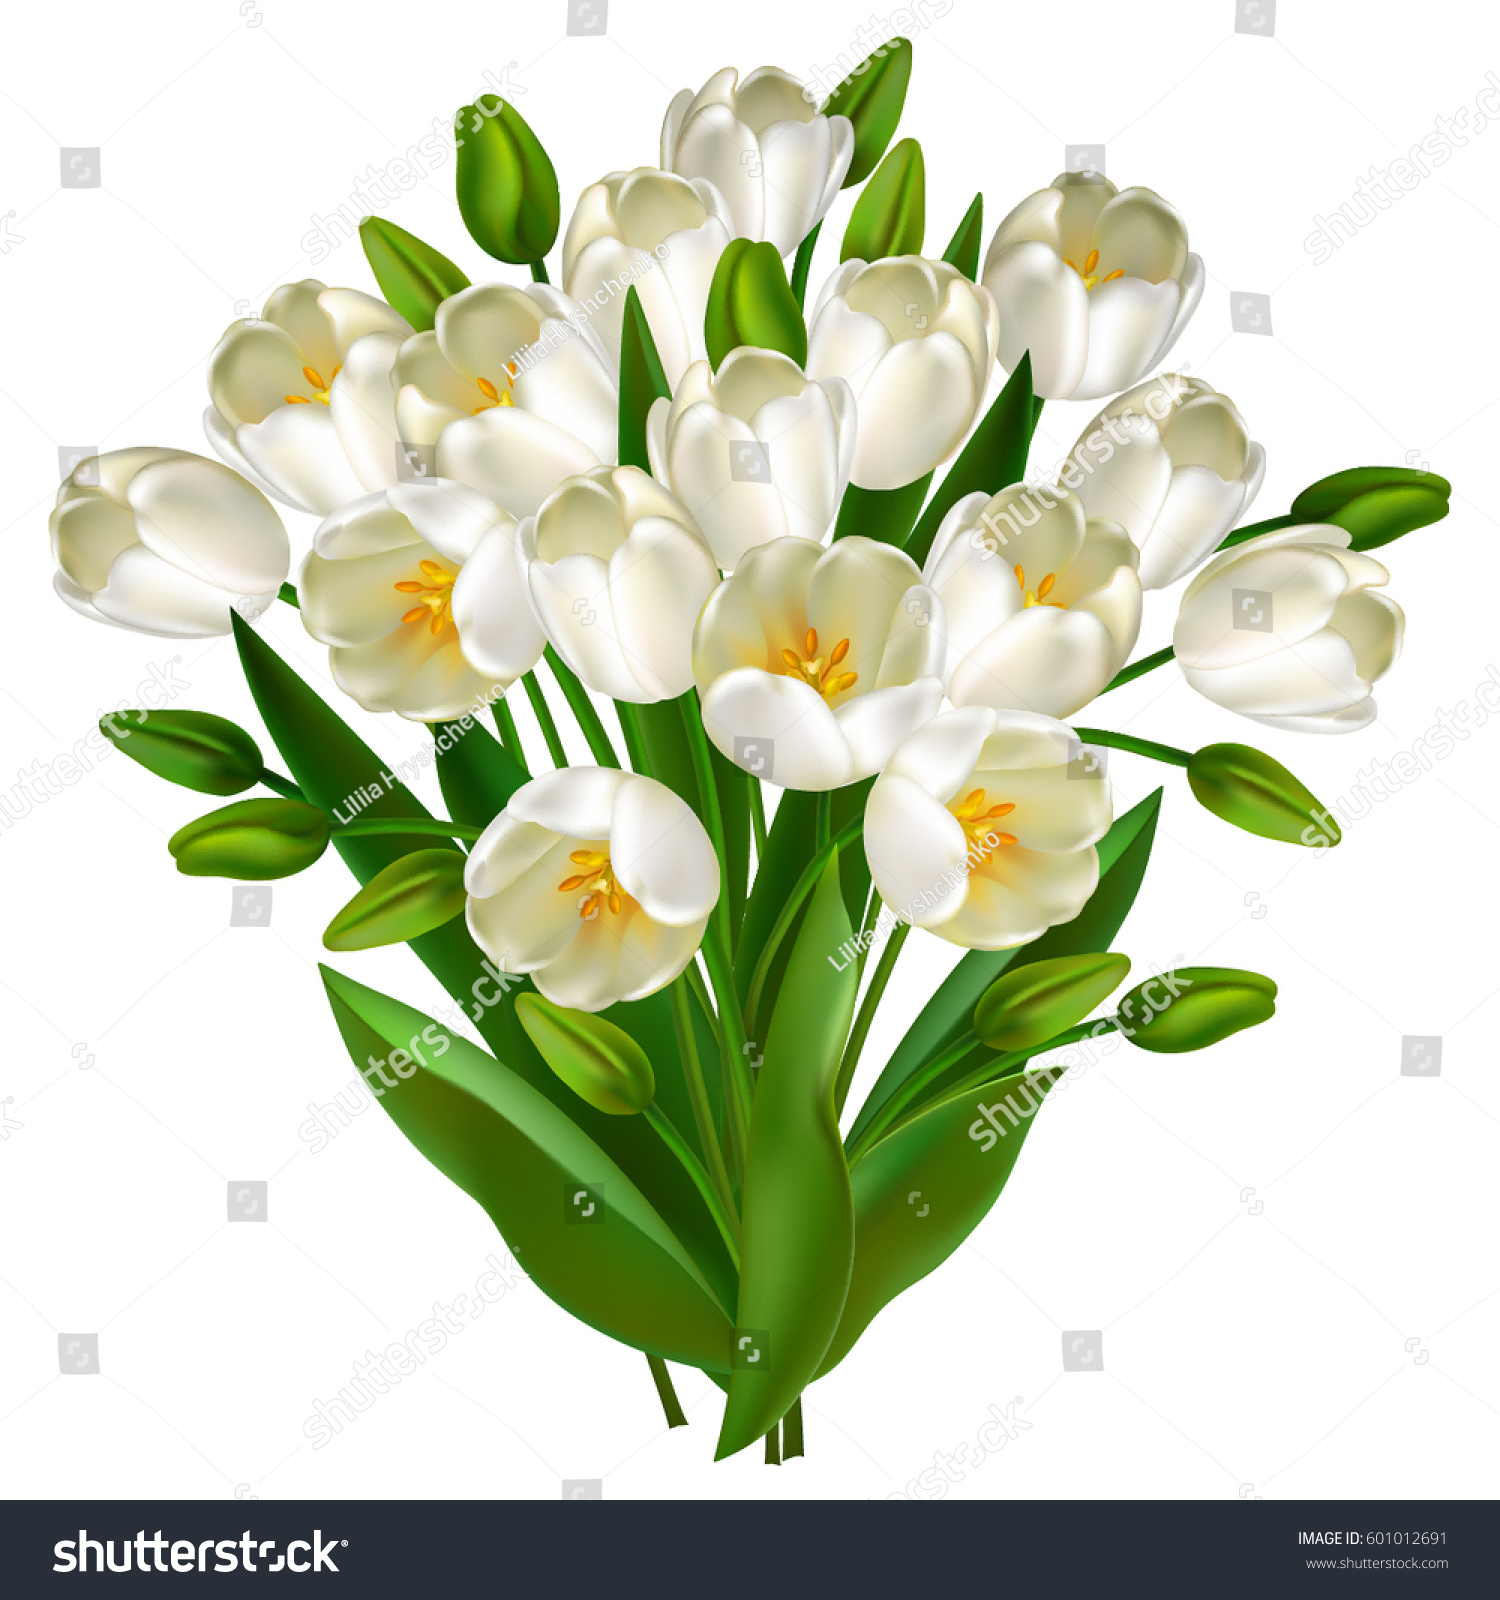 Tulip Flower Isolated Over White Floral Stock Vector Royalty Free